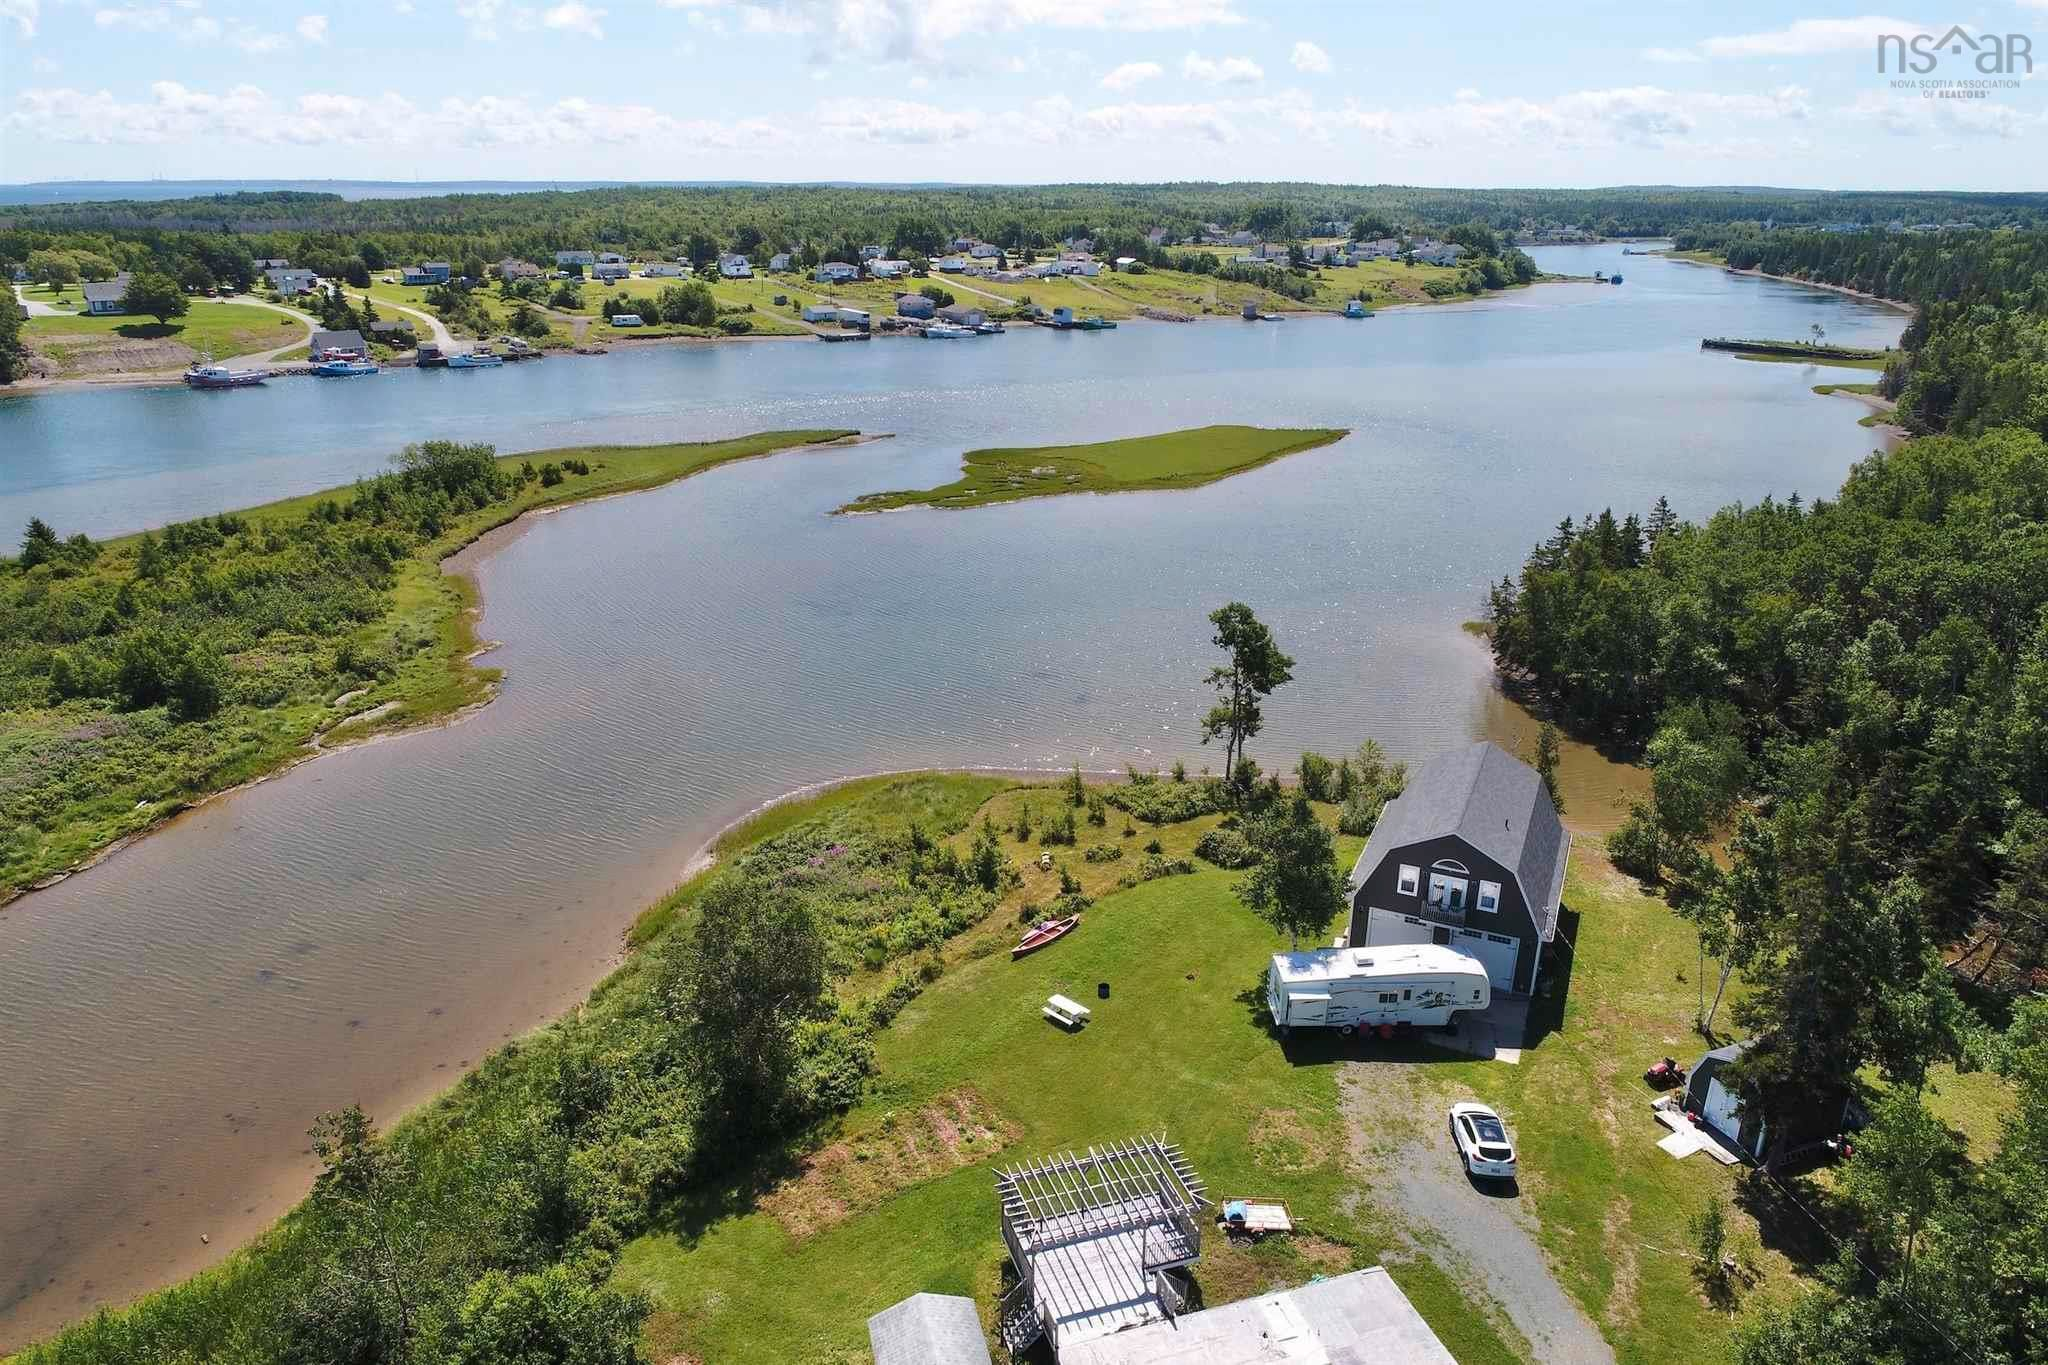 Main Photo: 696 Point Aconi Road in Point Aconi: 207-C. B. County Residential for sale (Cape Breton)  : MLS®# 202120612